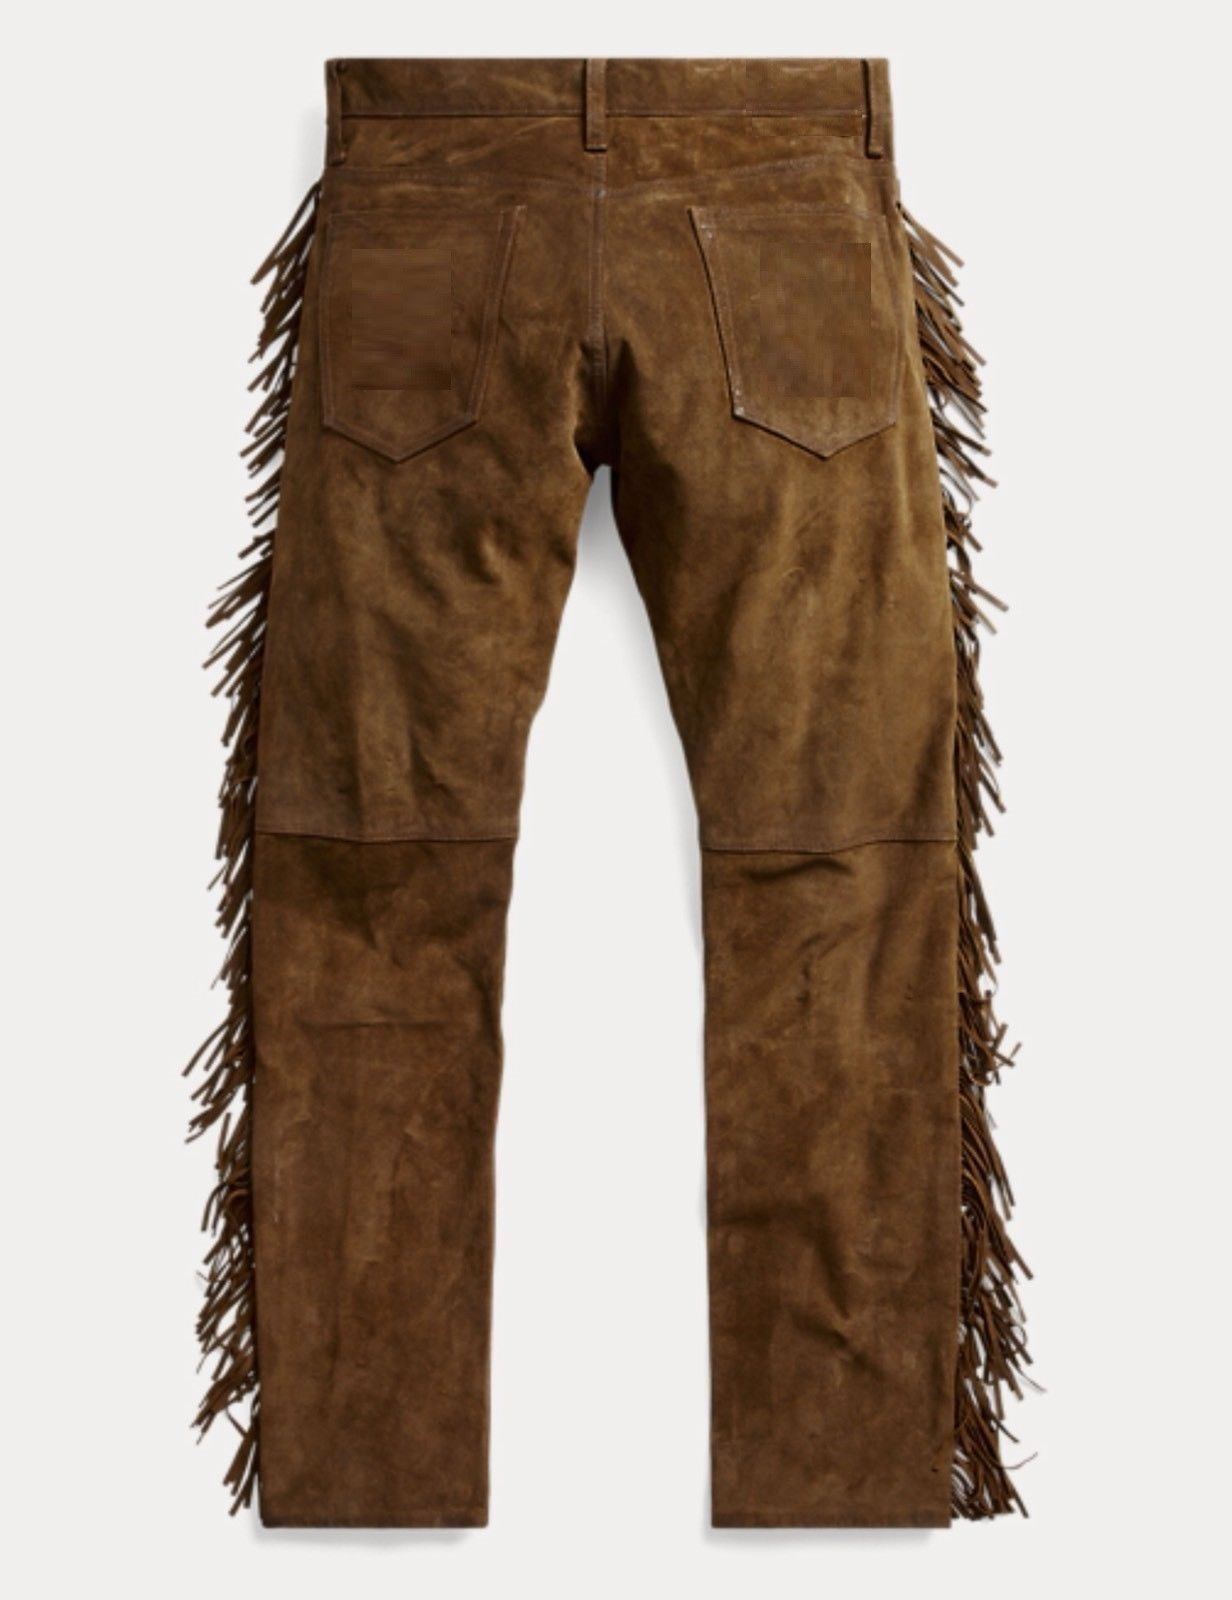 QASTAN Men's New Native American Buckskin Color Suede Leather Fringes Pants WP2 image 5